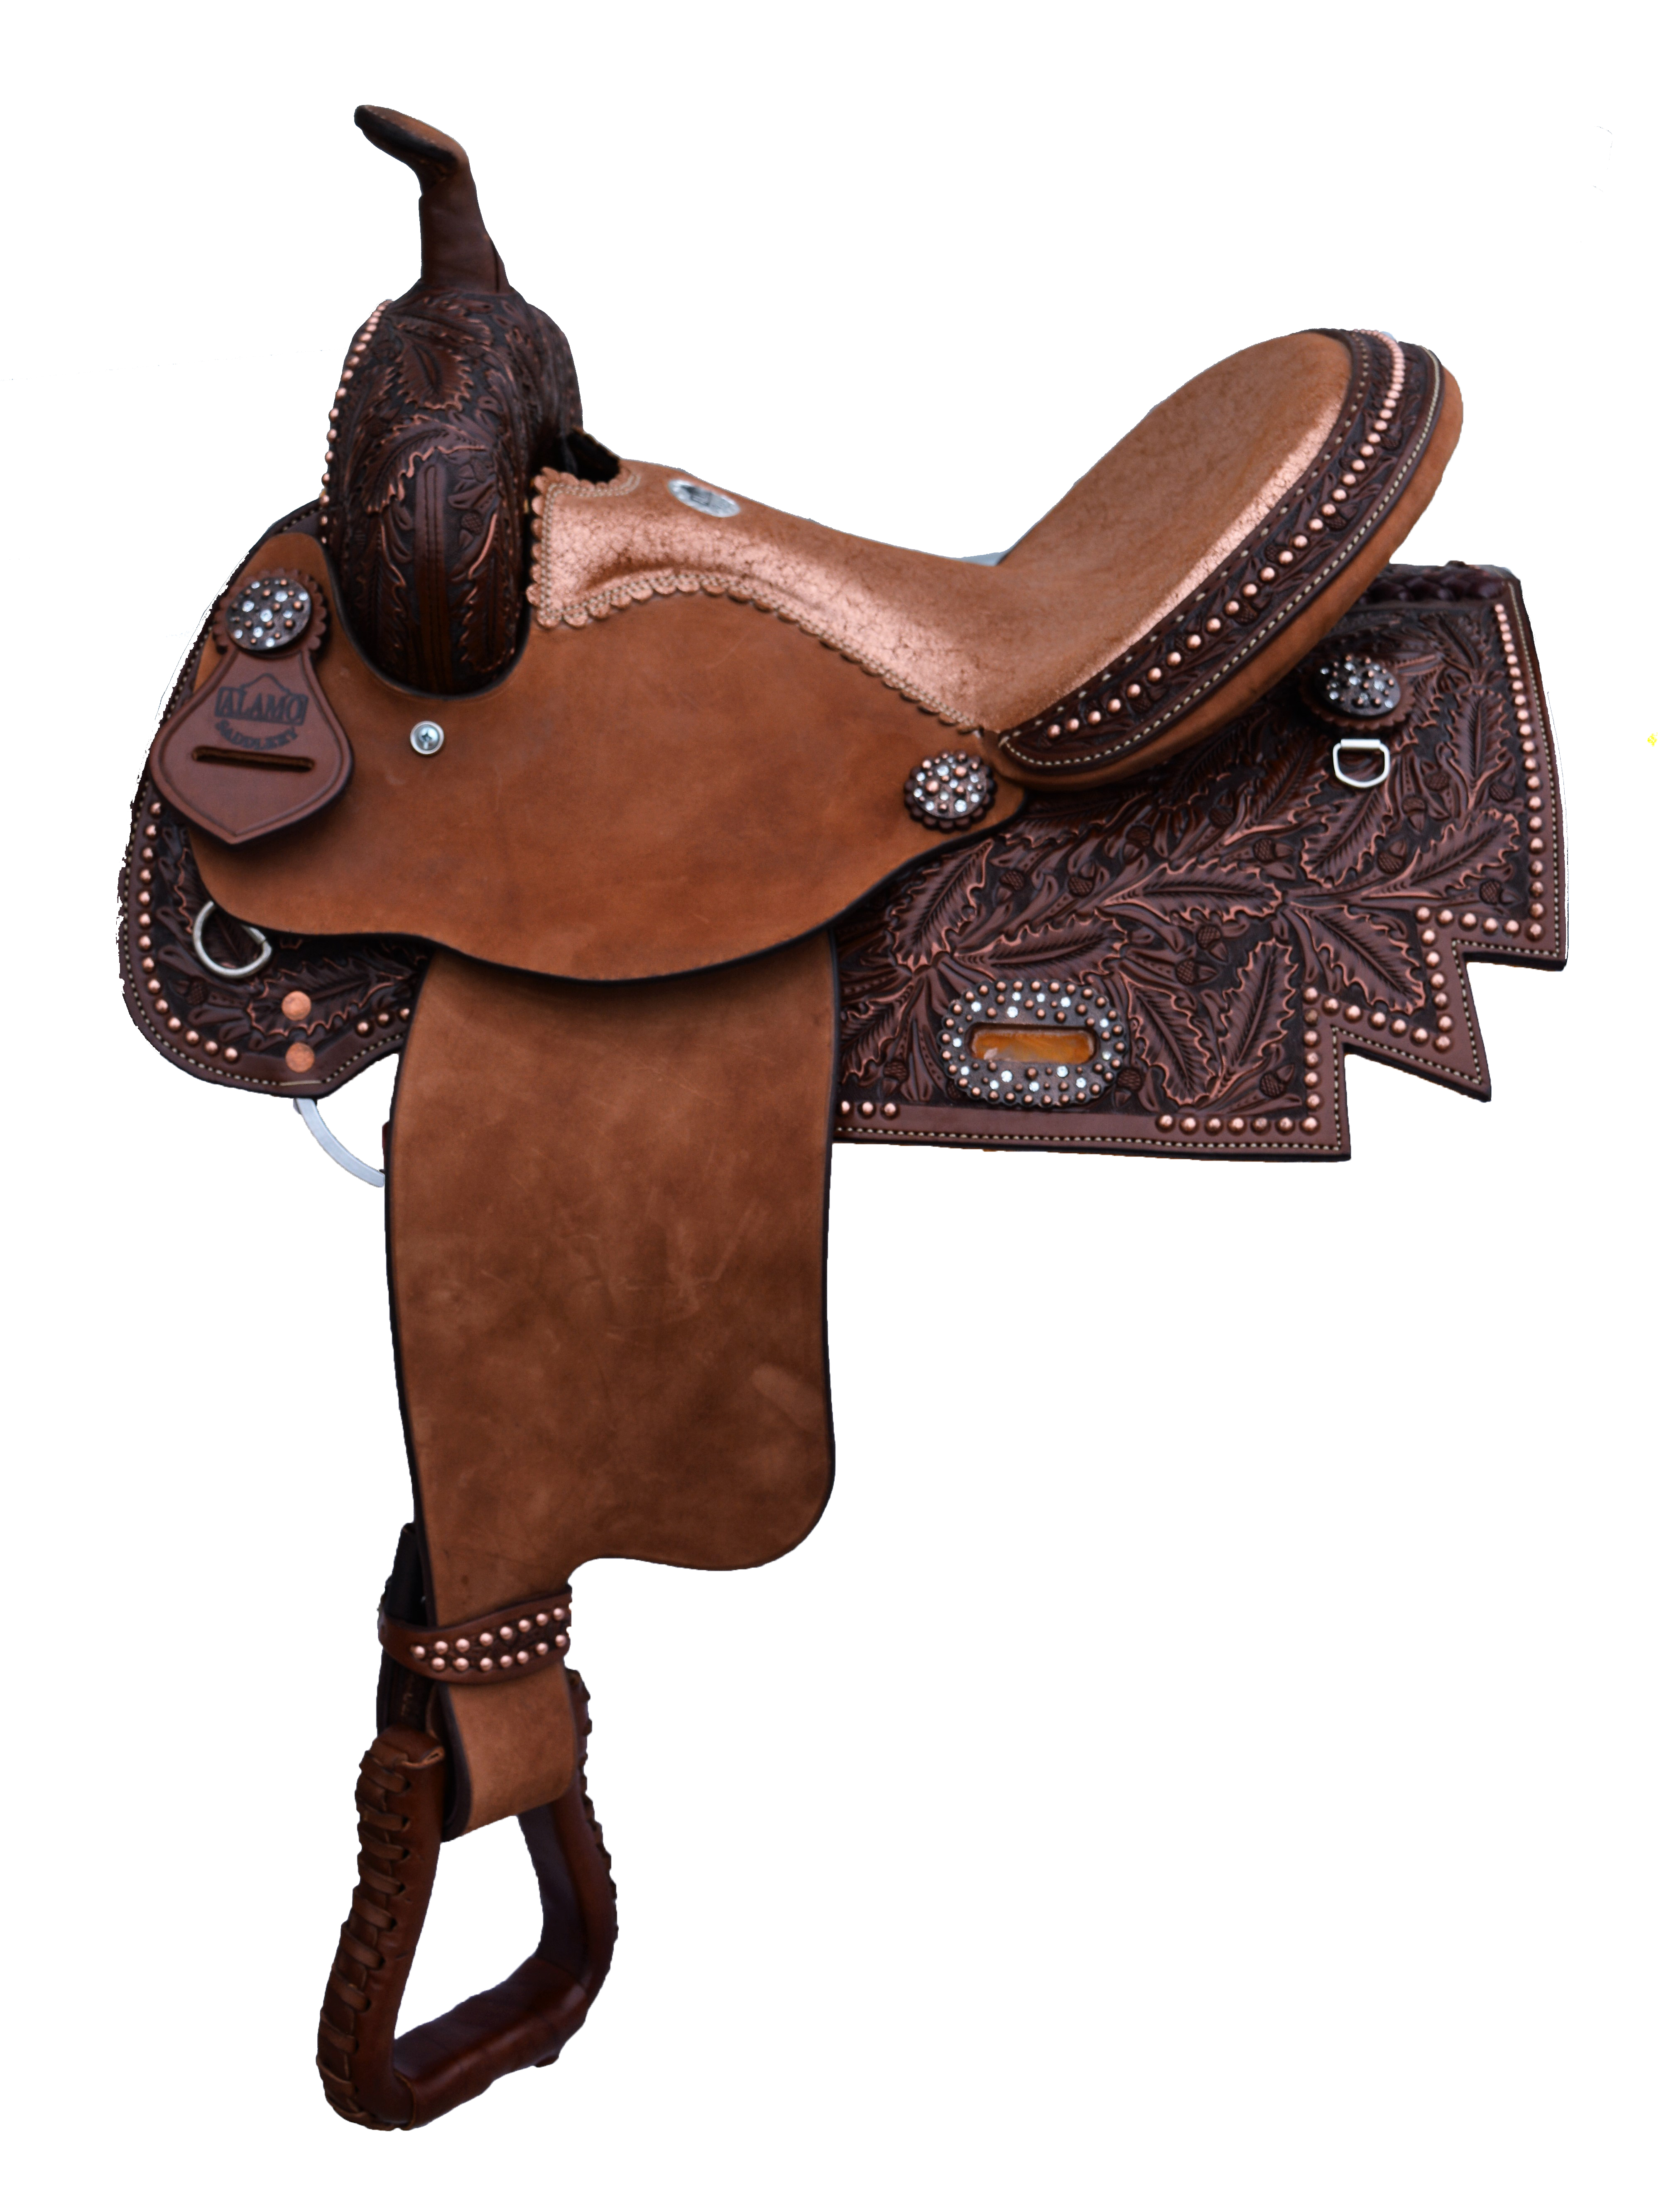 0217 BARREL SADDLE WITH DIAMOND CUT SKIRT AND COPPER CRACKLE SEAT